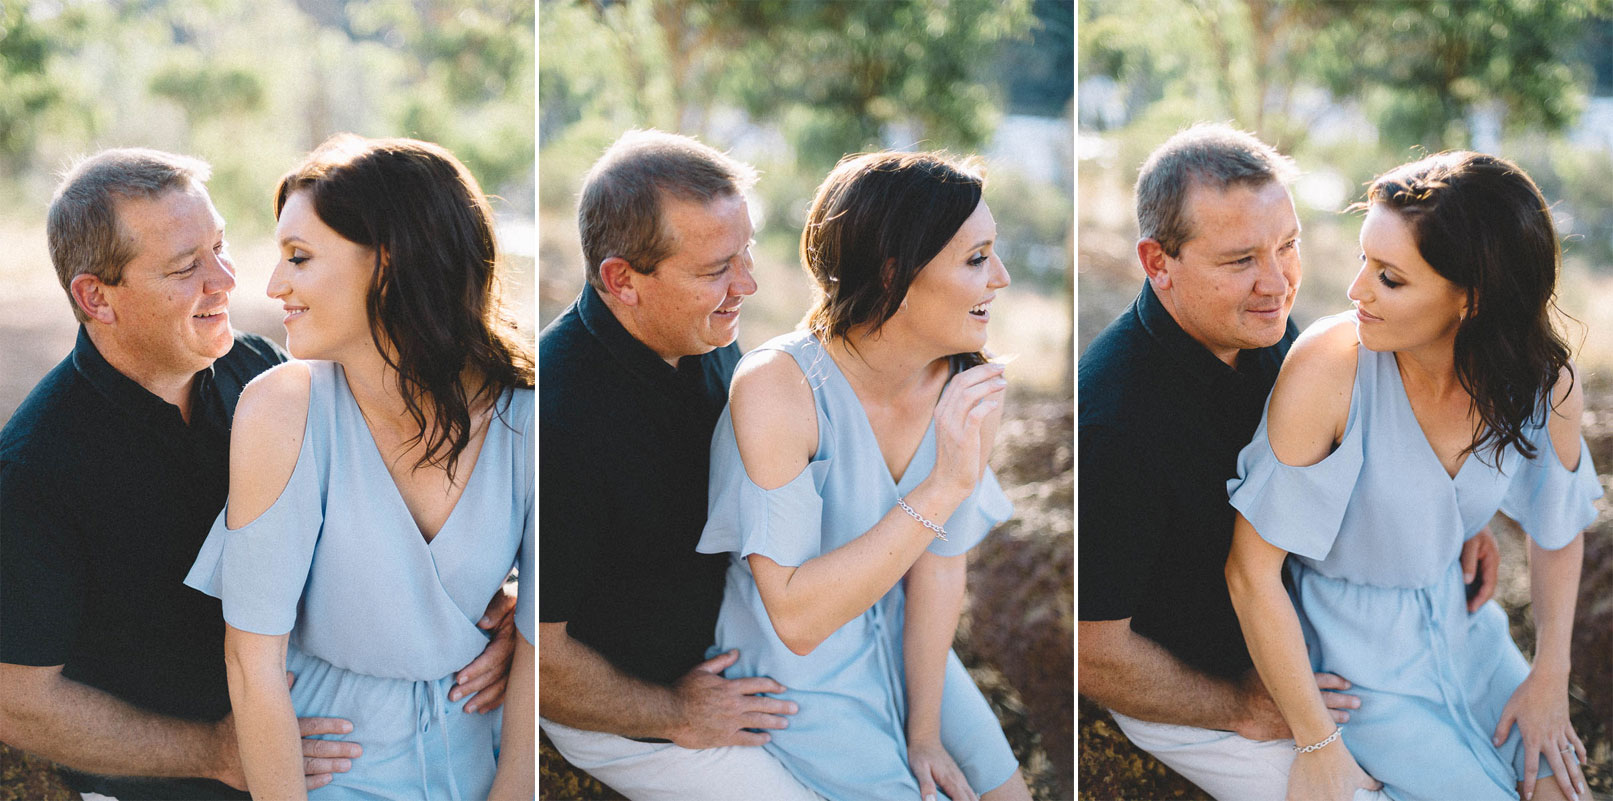 swan-valley-perth-engagement-photo-session-6.jpg